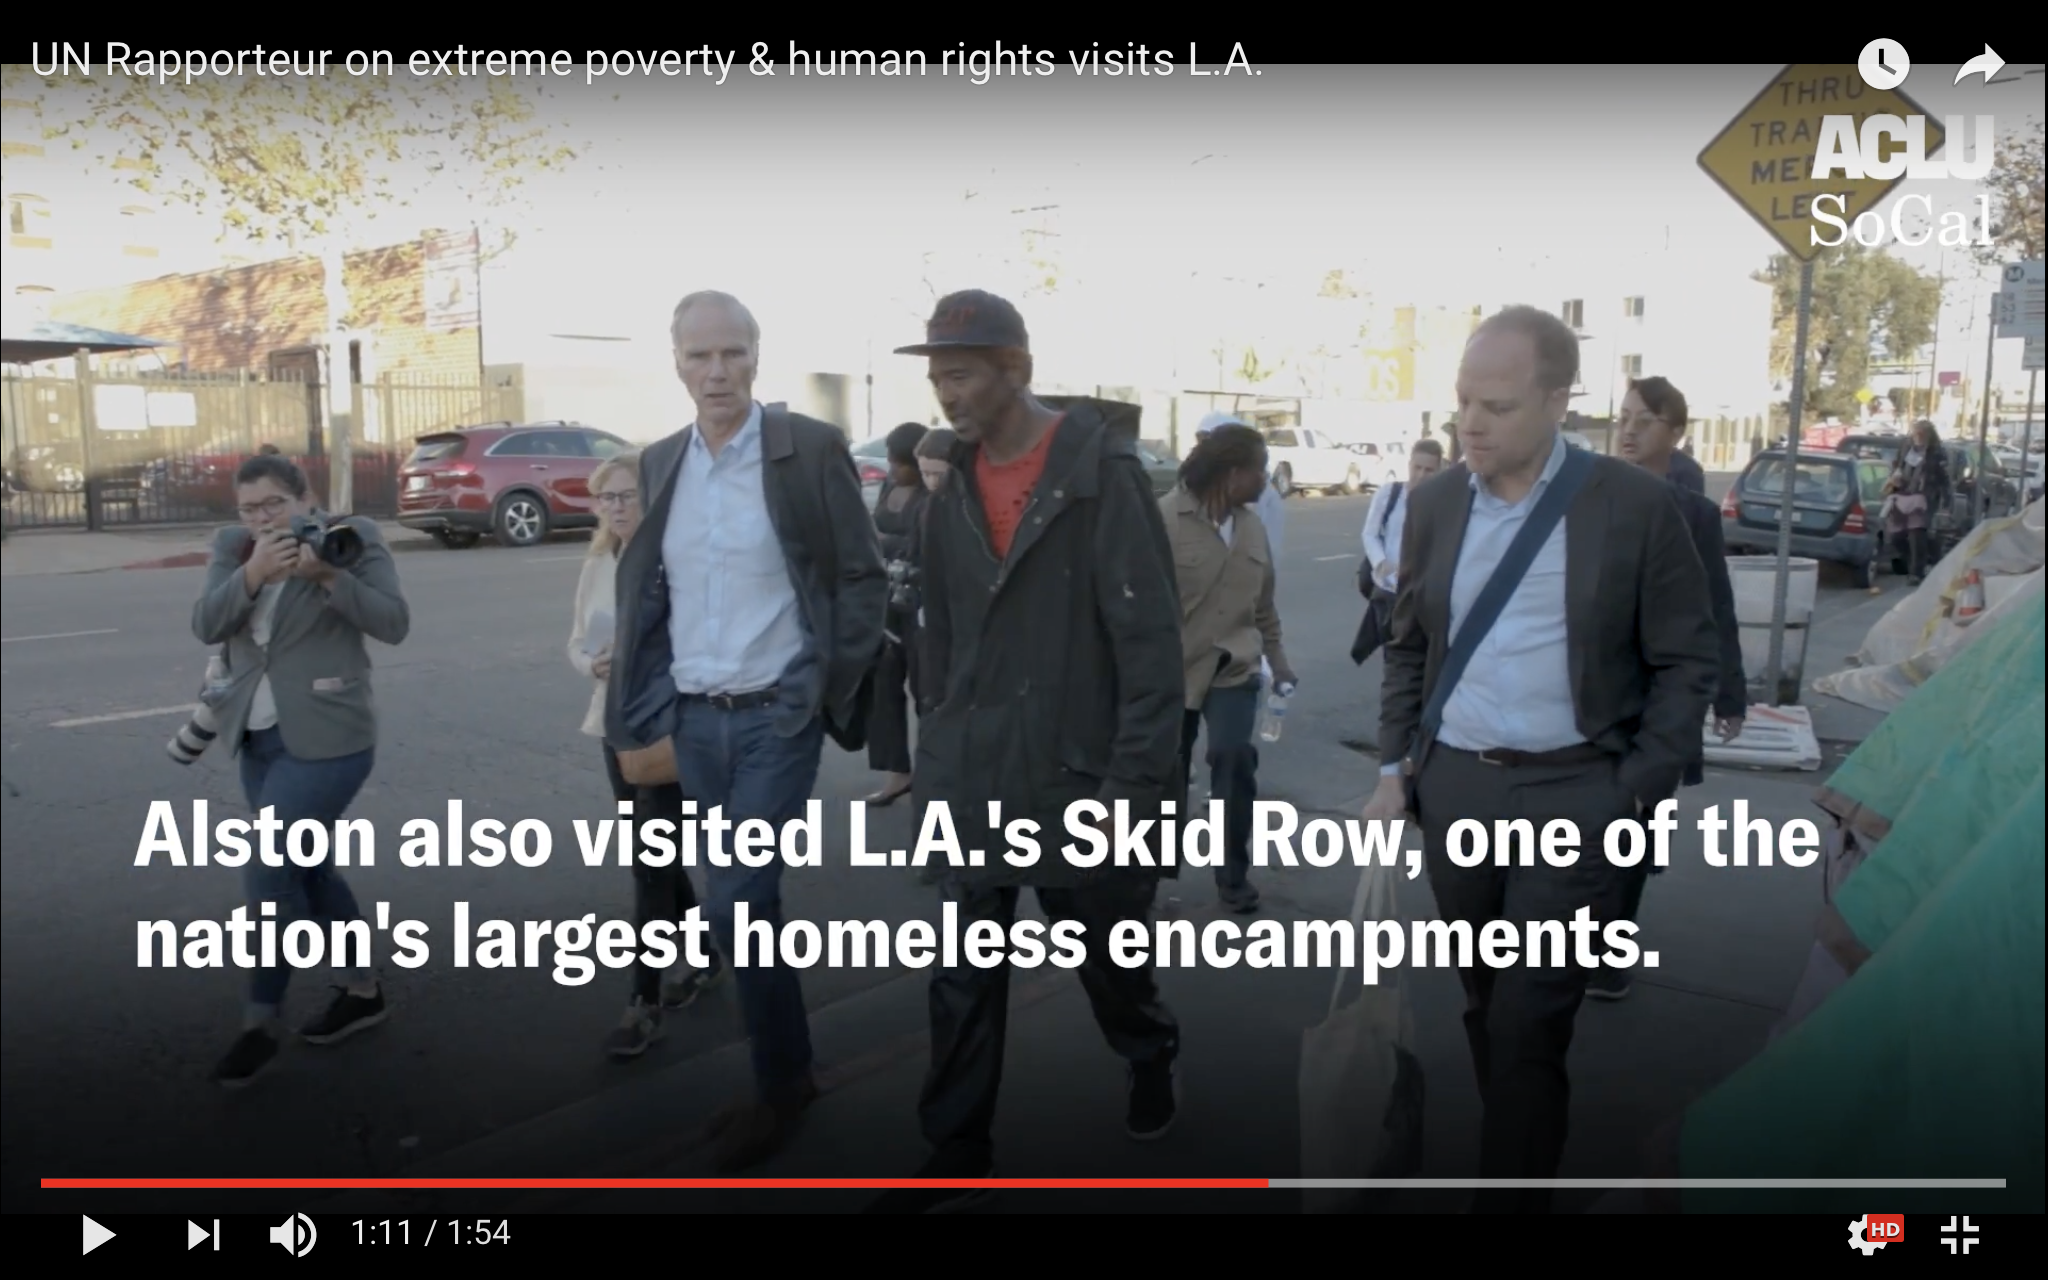 UN Special Rapporteur on Extreme Poverty Philip Alston turing Skid Row in L.A.